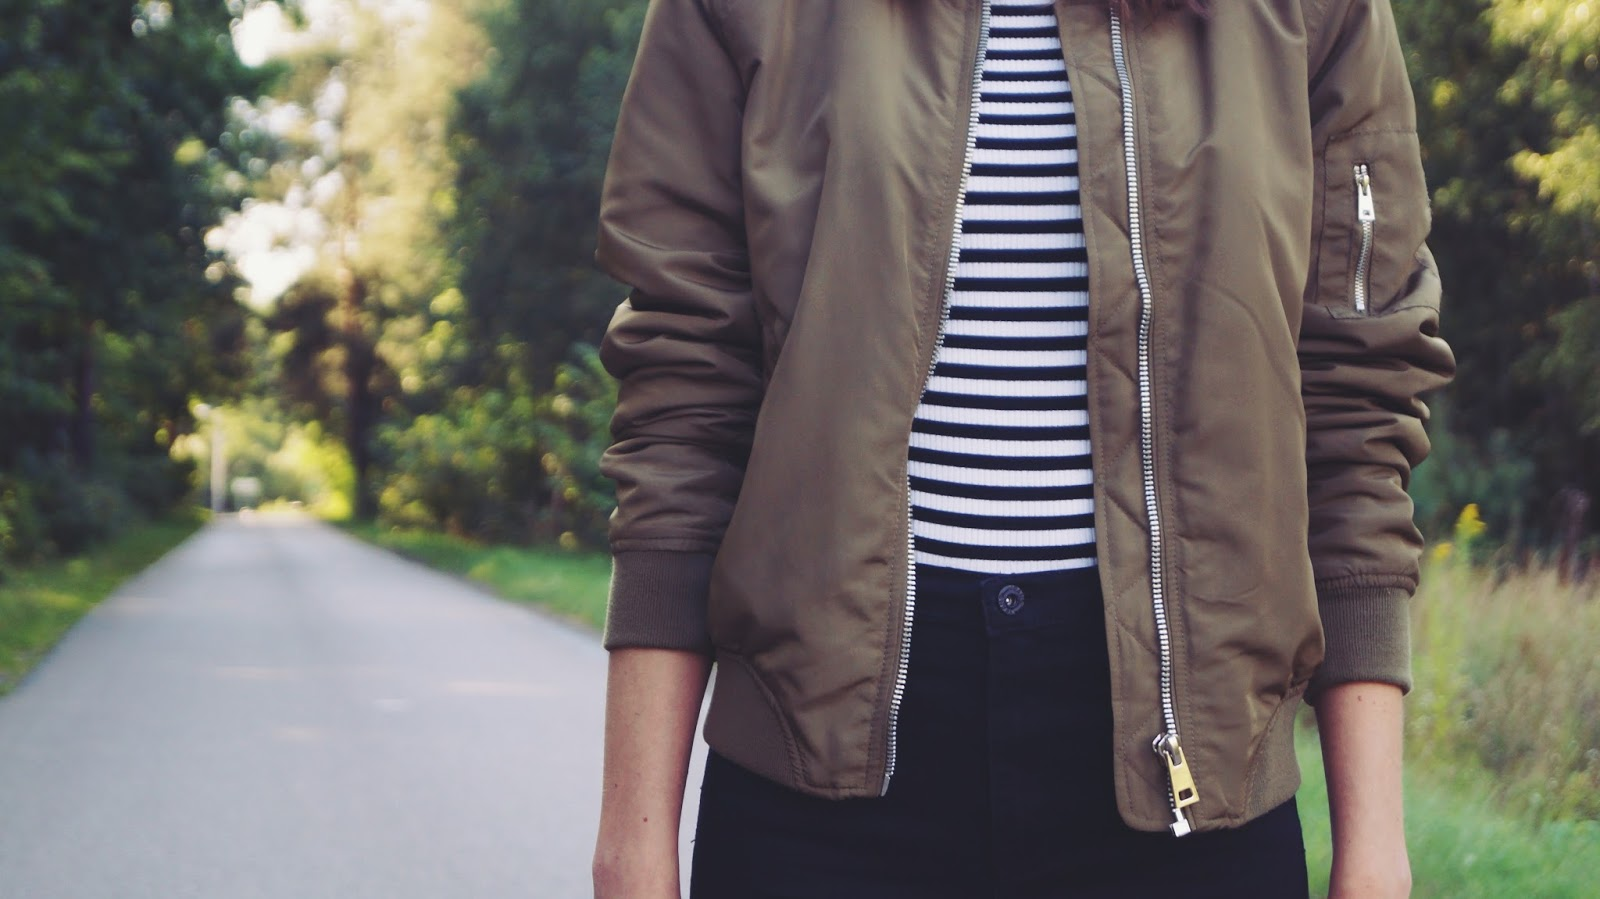 Khaki bomber, stripes and black jeans